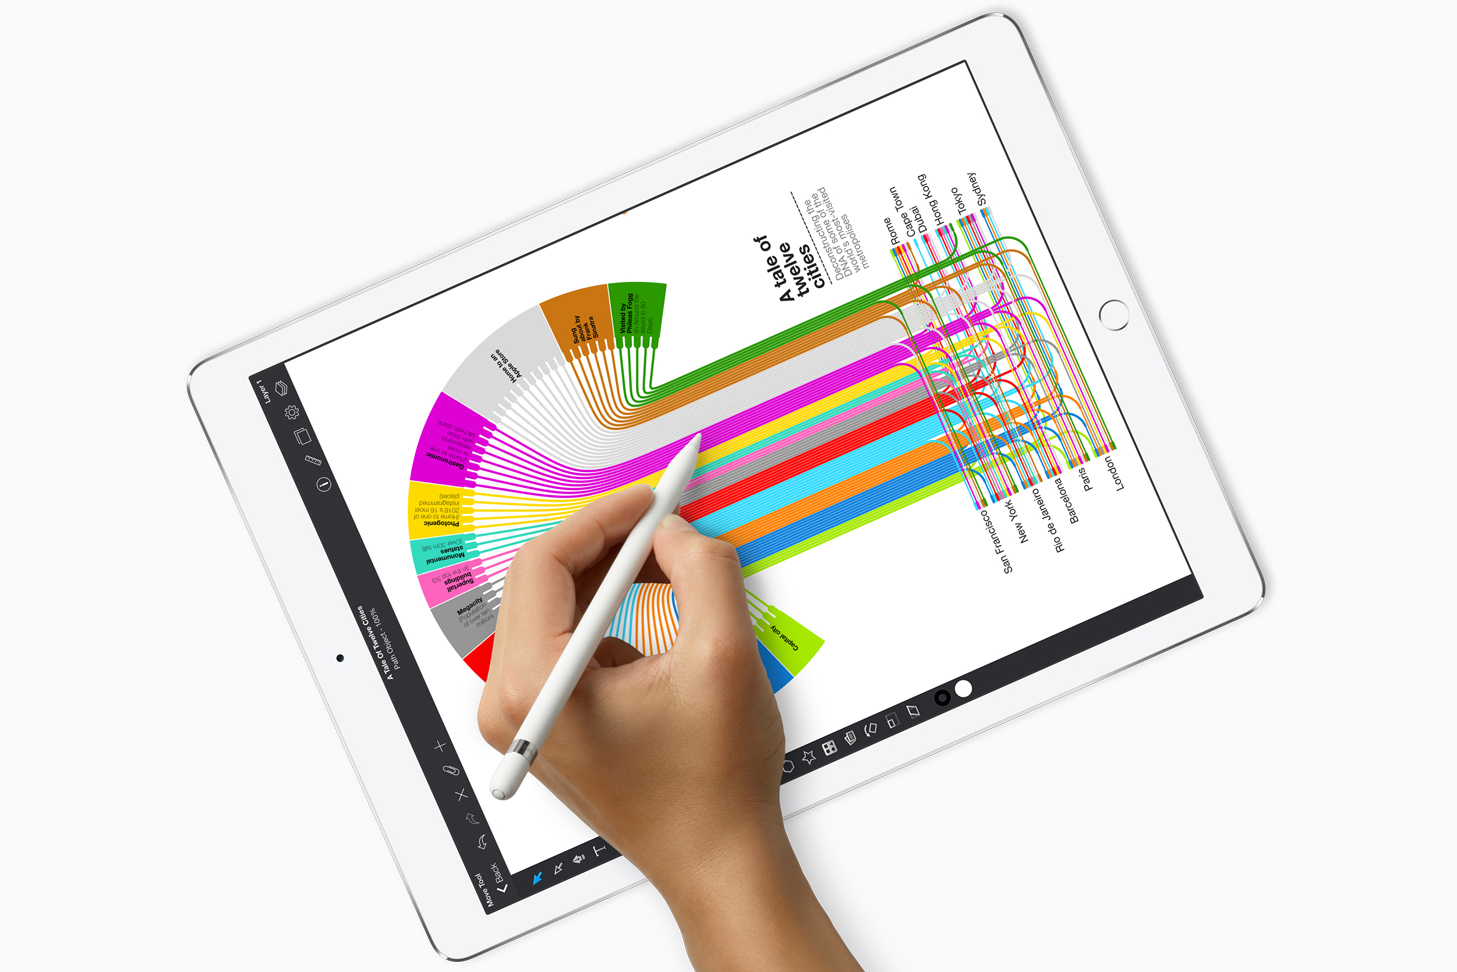 Apple Ipad Pro 129 2017 Tablet Review Reviews 105 512gb New Gold Wifi Only